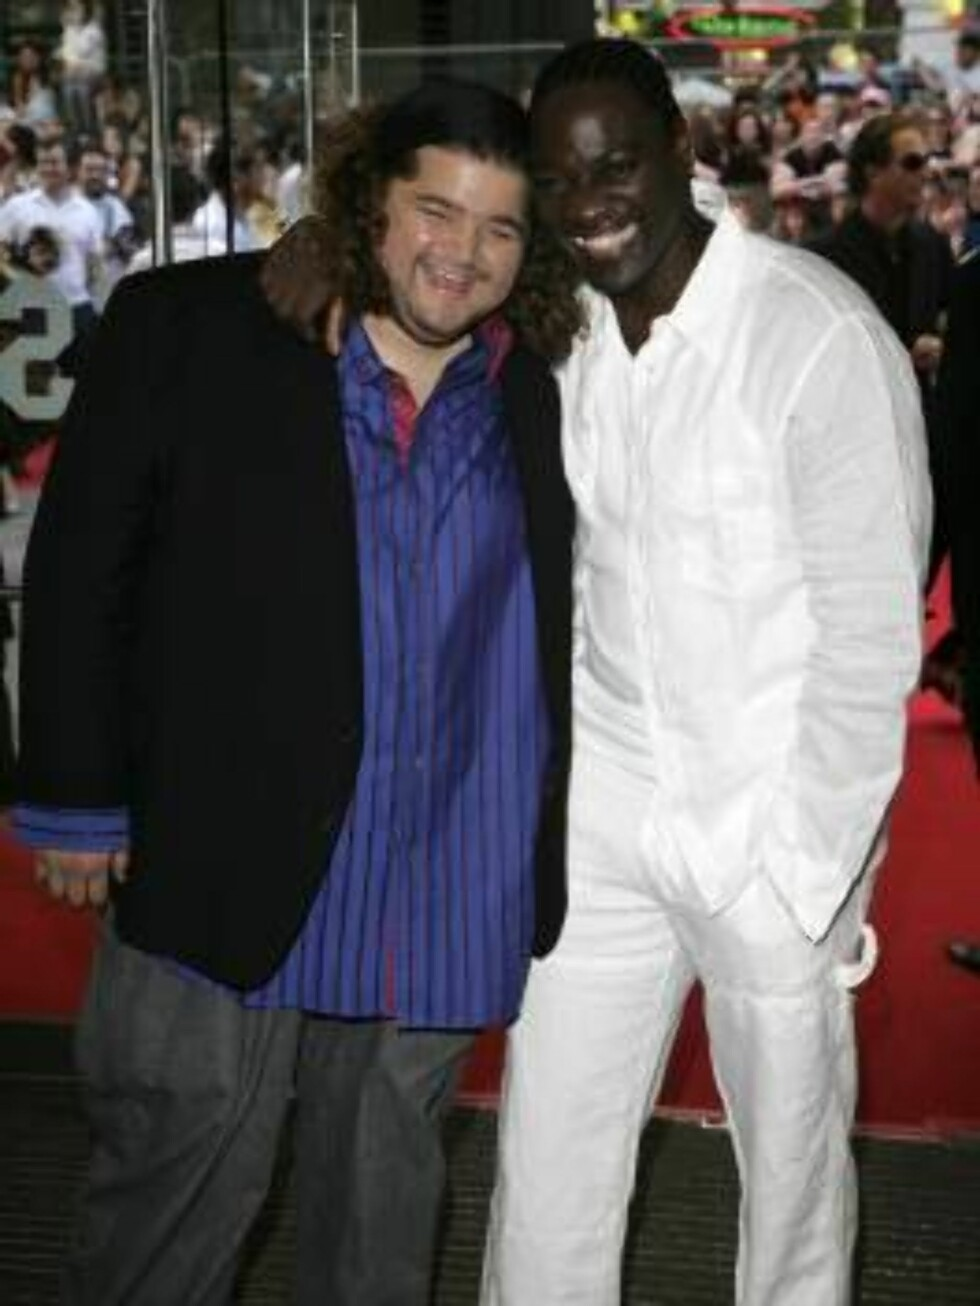 "<strong>LONDON - JULY 03:</strong>  (UK TABLOID NEWSPAPERS OUT)  Actors Jorge Garcia (L) and Adewale Akinnuoye-Agbaje arrive at the European Premiere of ""Pirates of the Caribbean: Dead Man's Chest"" at Odeon Leicester Square on July 3, 2006 in London, England.  (Photo by D Foto: All Over Press"